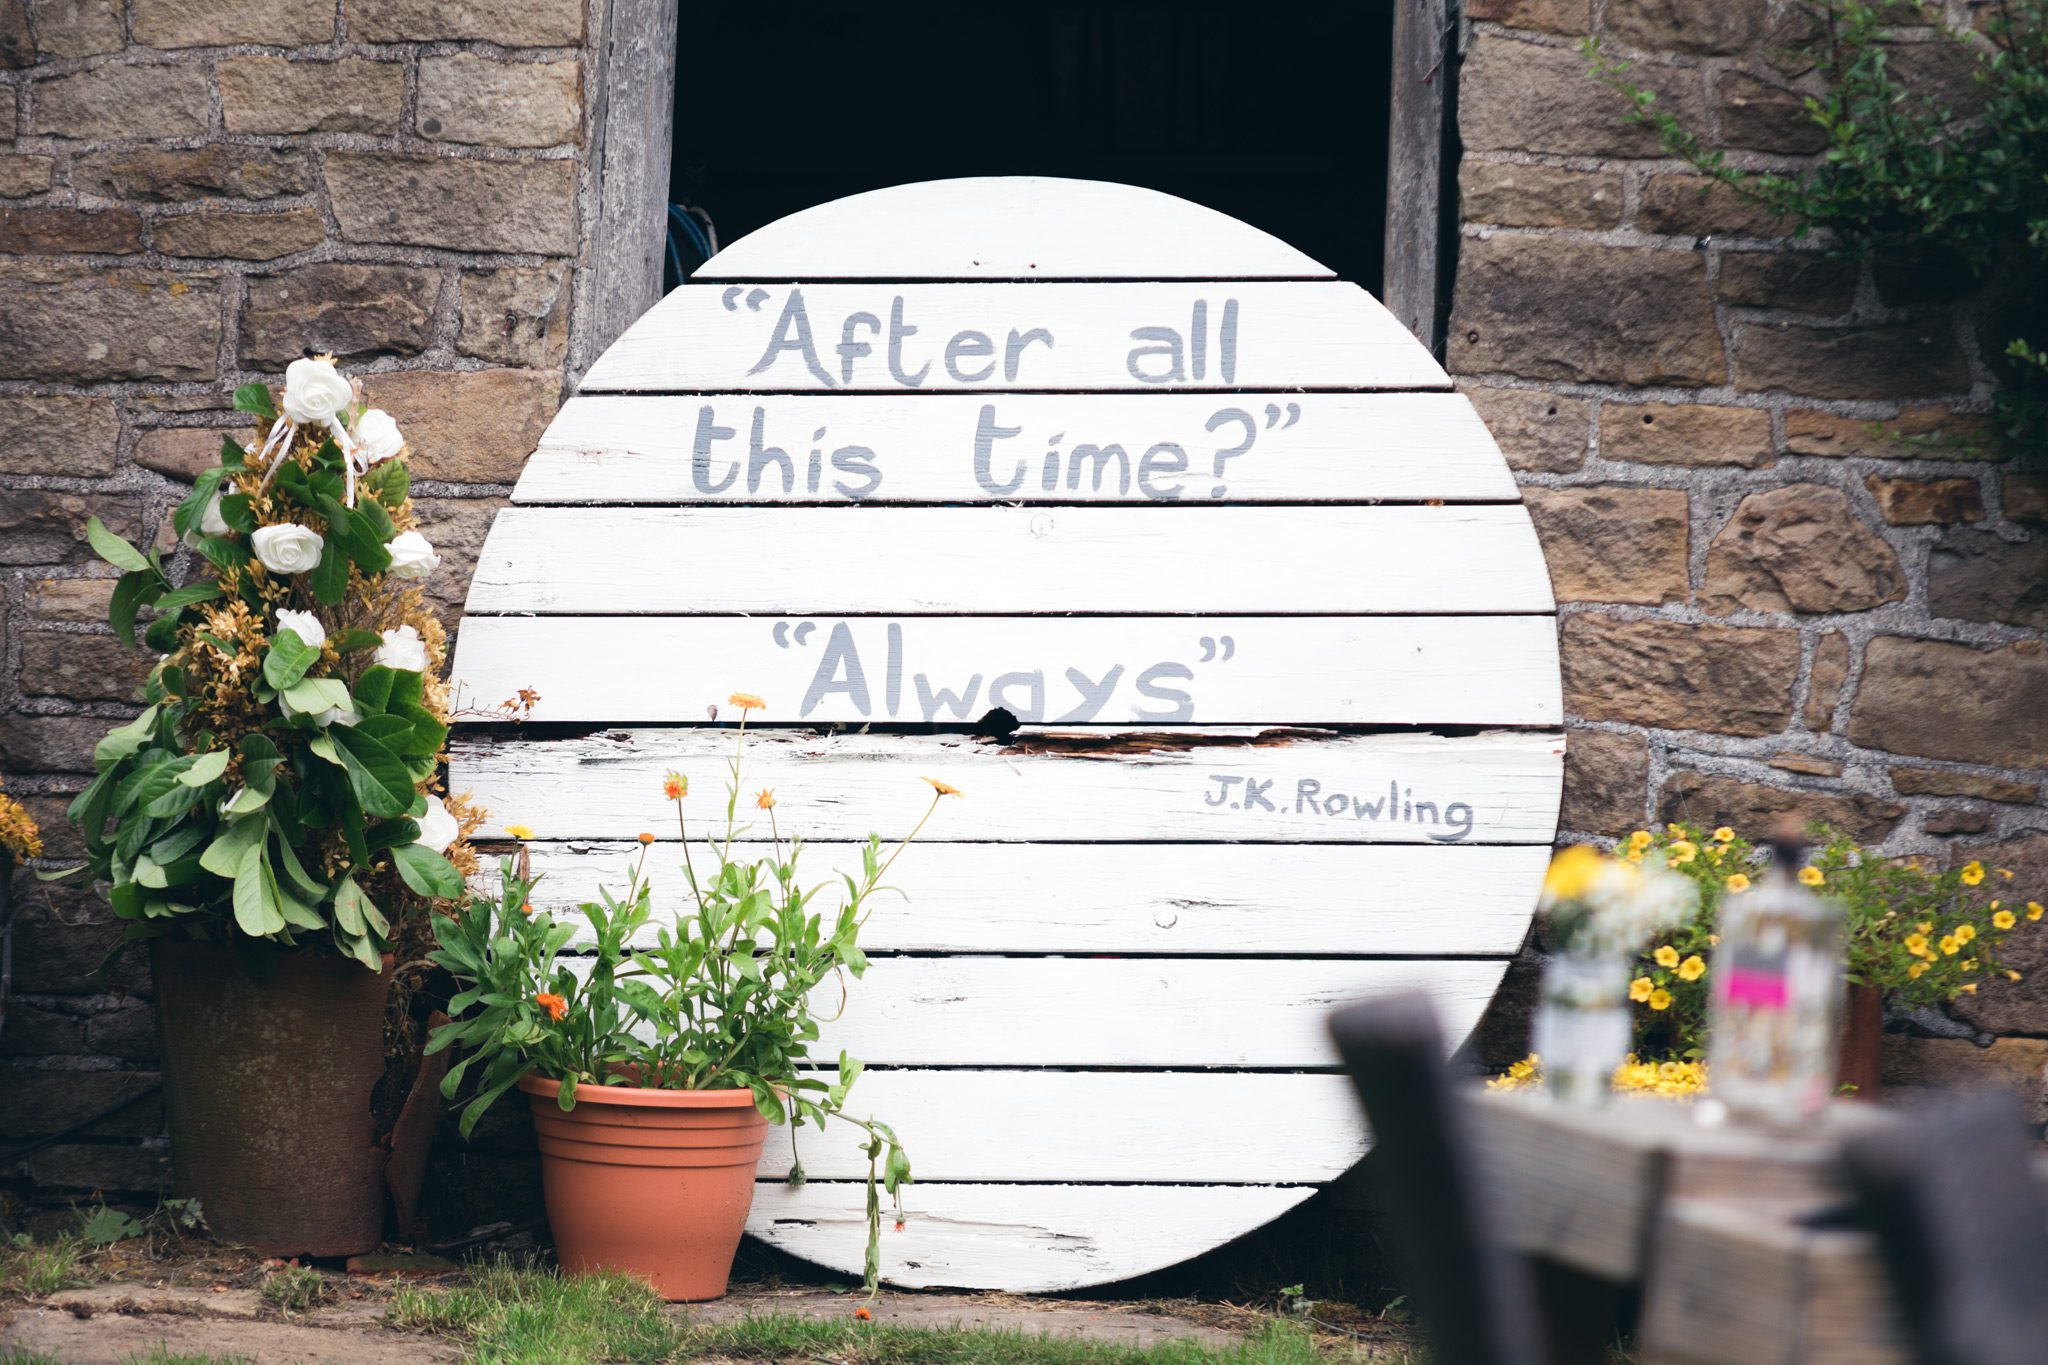 Harry Potter quote on a hand painted sign - after all this time, always